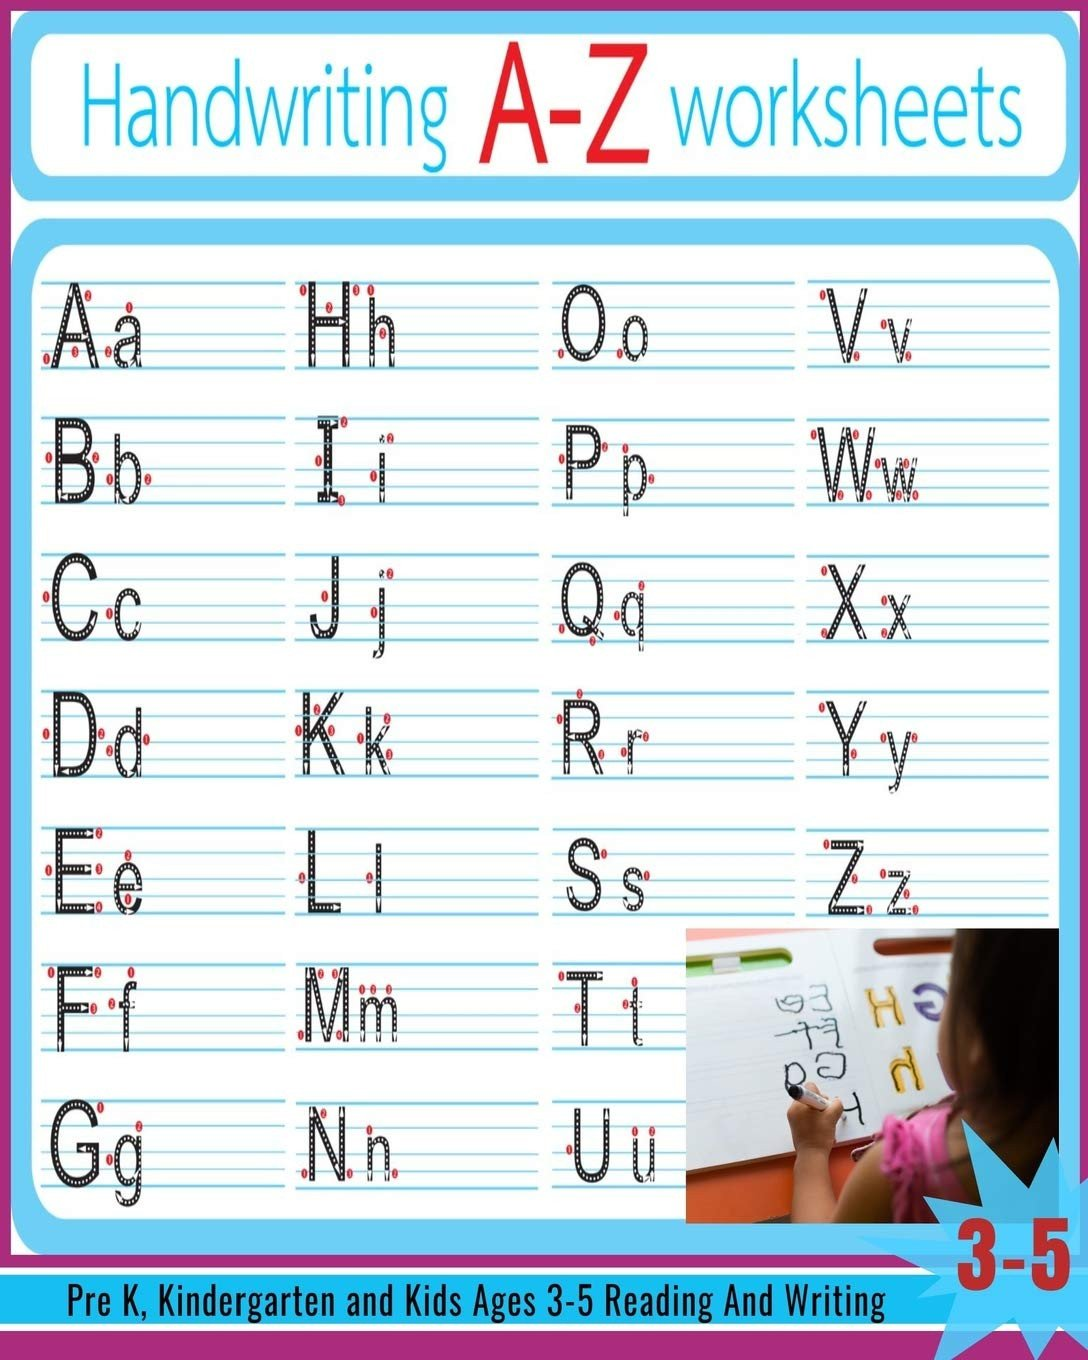 Tracing Letters Worksheet Az Handwriting A Z Worksheets Alphabet Tracing Letter Tracing